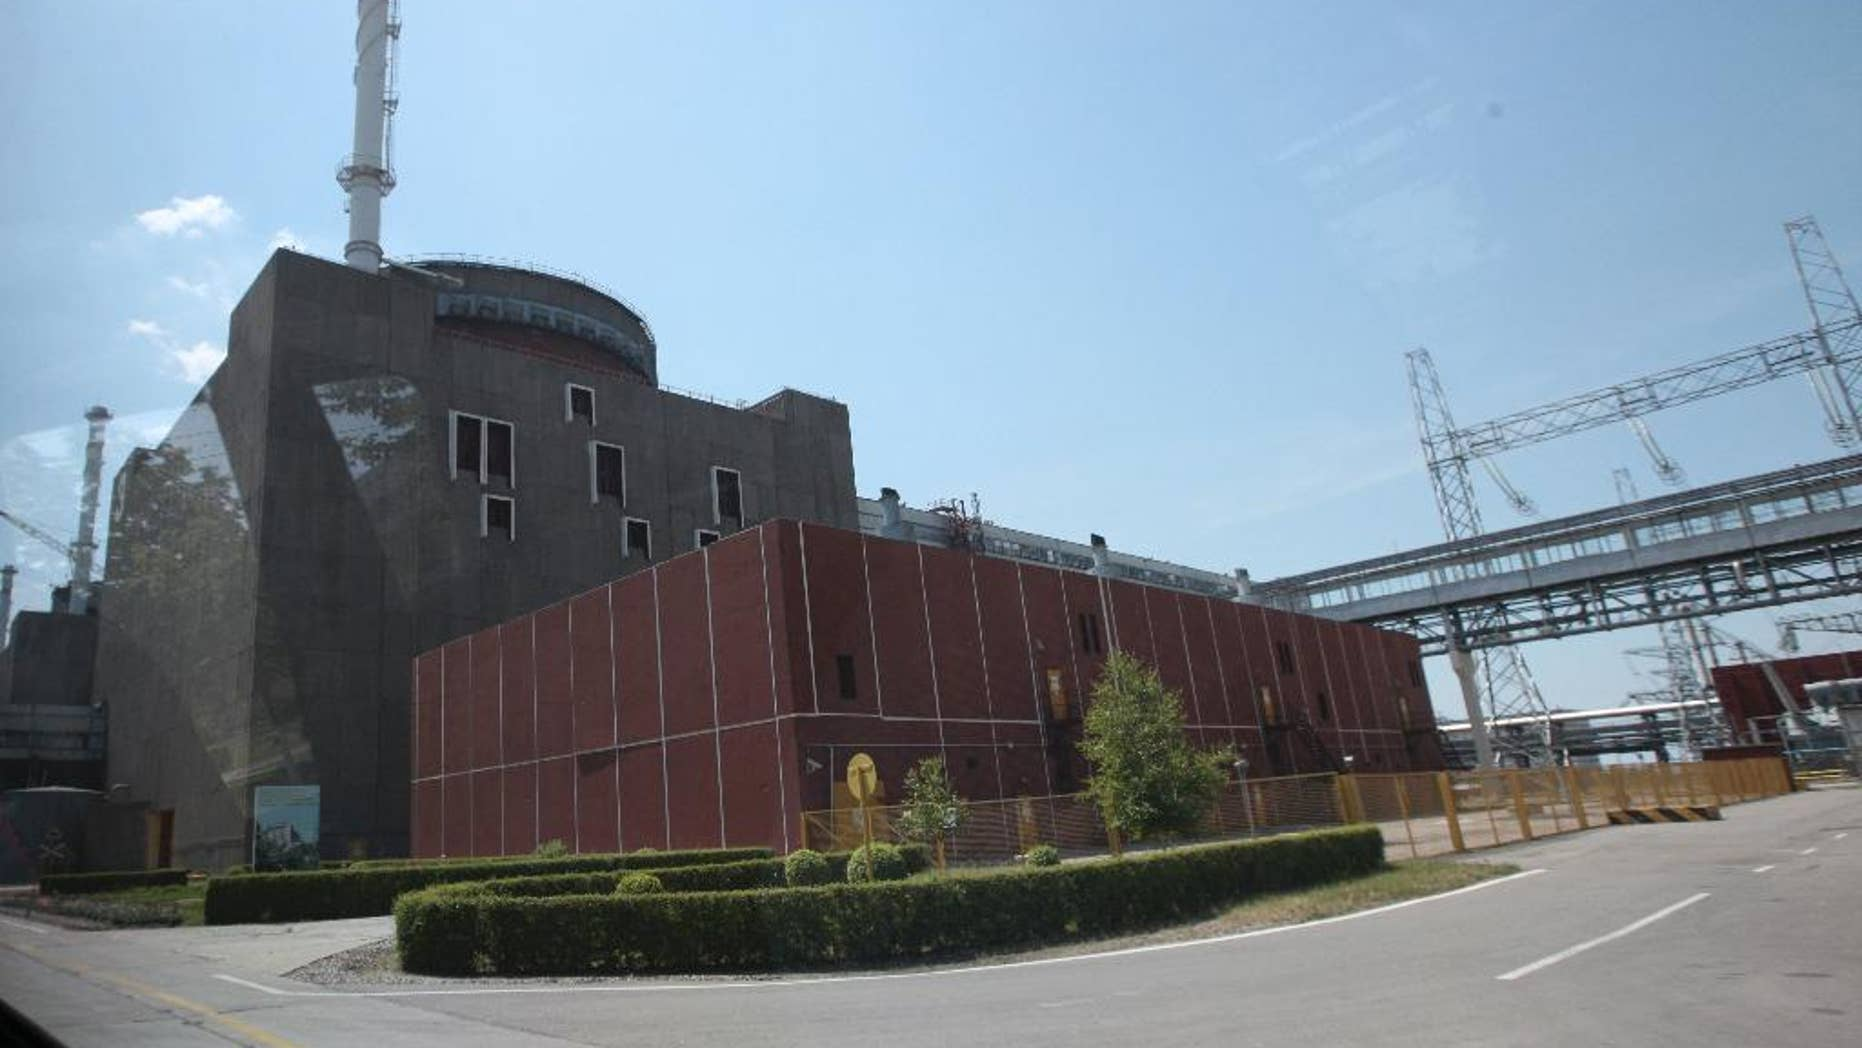 A power-generating unit at the Zaporozhiya nuclear power plant in the city of Enerhodar, in southern Ukraine, June 12, 2008. Ukrainian Energy Minister Volodymyr Demchishin said Wednesday that a technical fault at the plant earlier this week has caused a drop in output, but that the incident poses no danger. (AP Photo/Olexander Prokopenko)